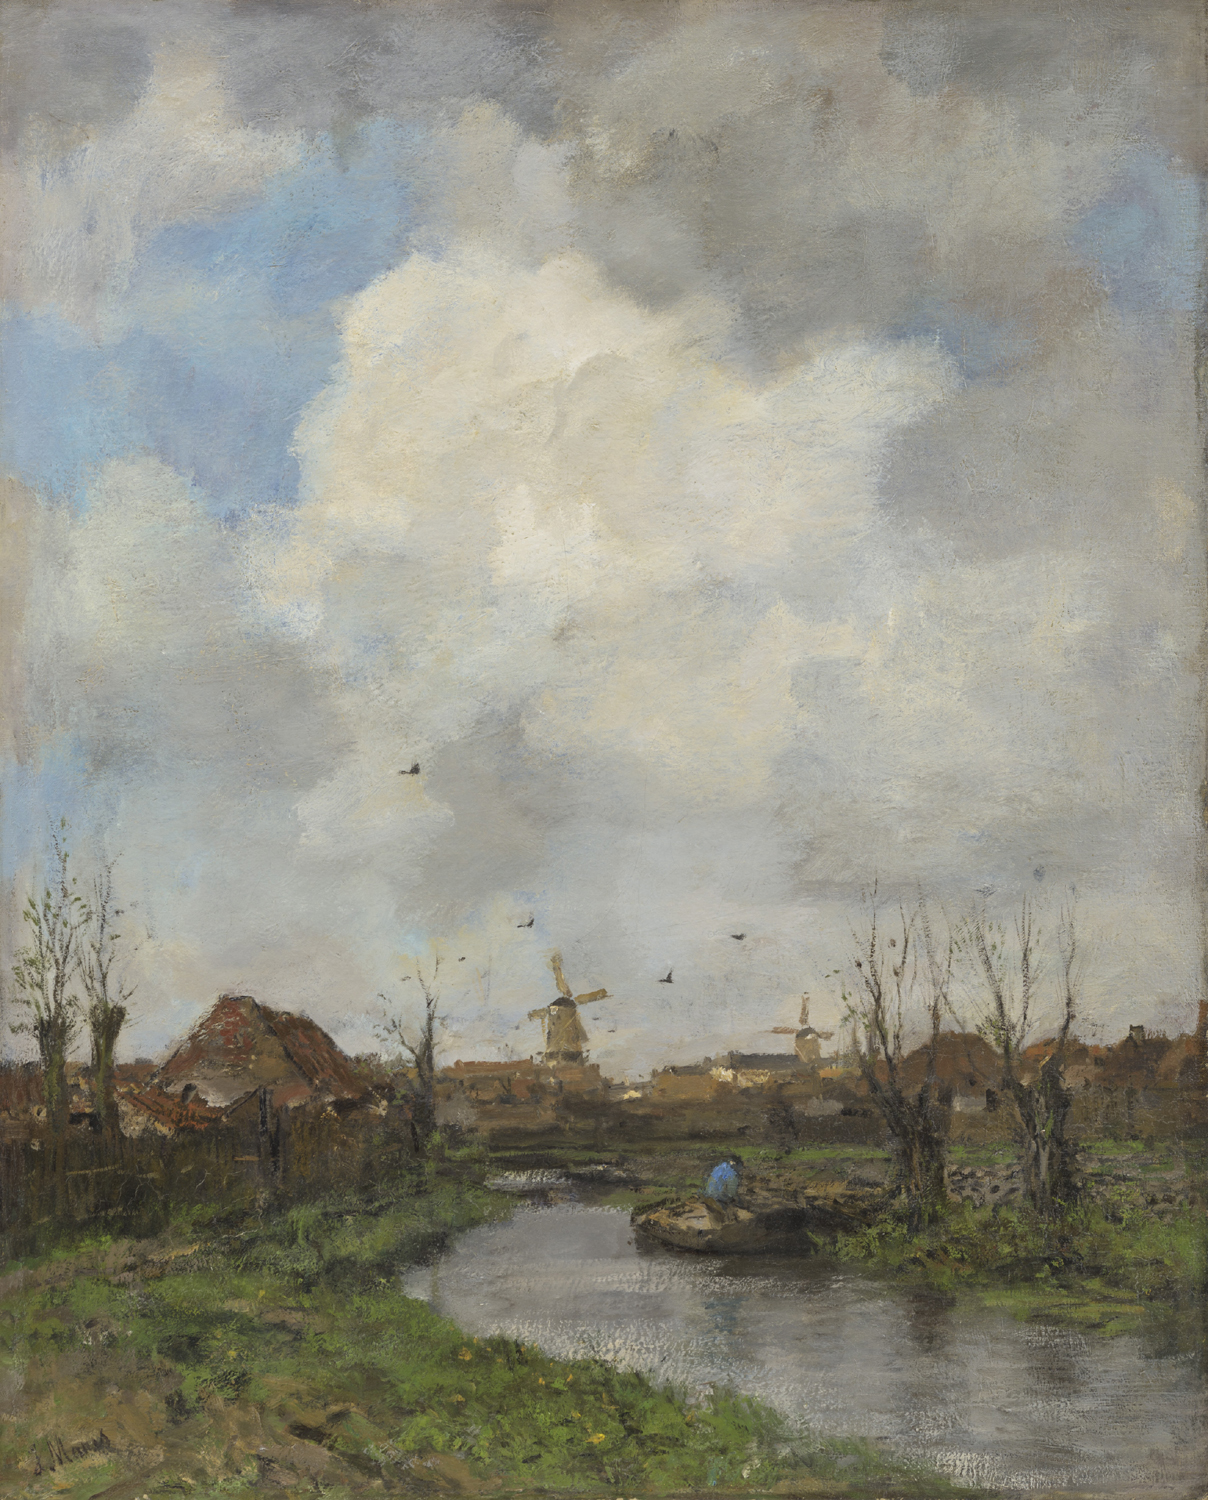 Jacob Maris | A landscape near The Hague | Kunsthandel Bies | Bies Gallery